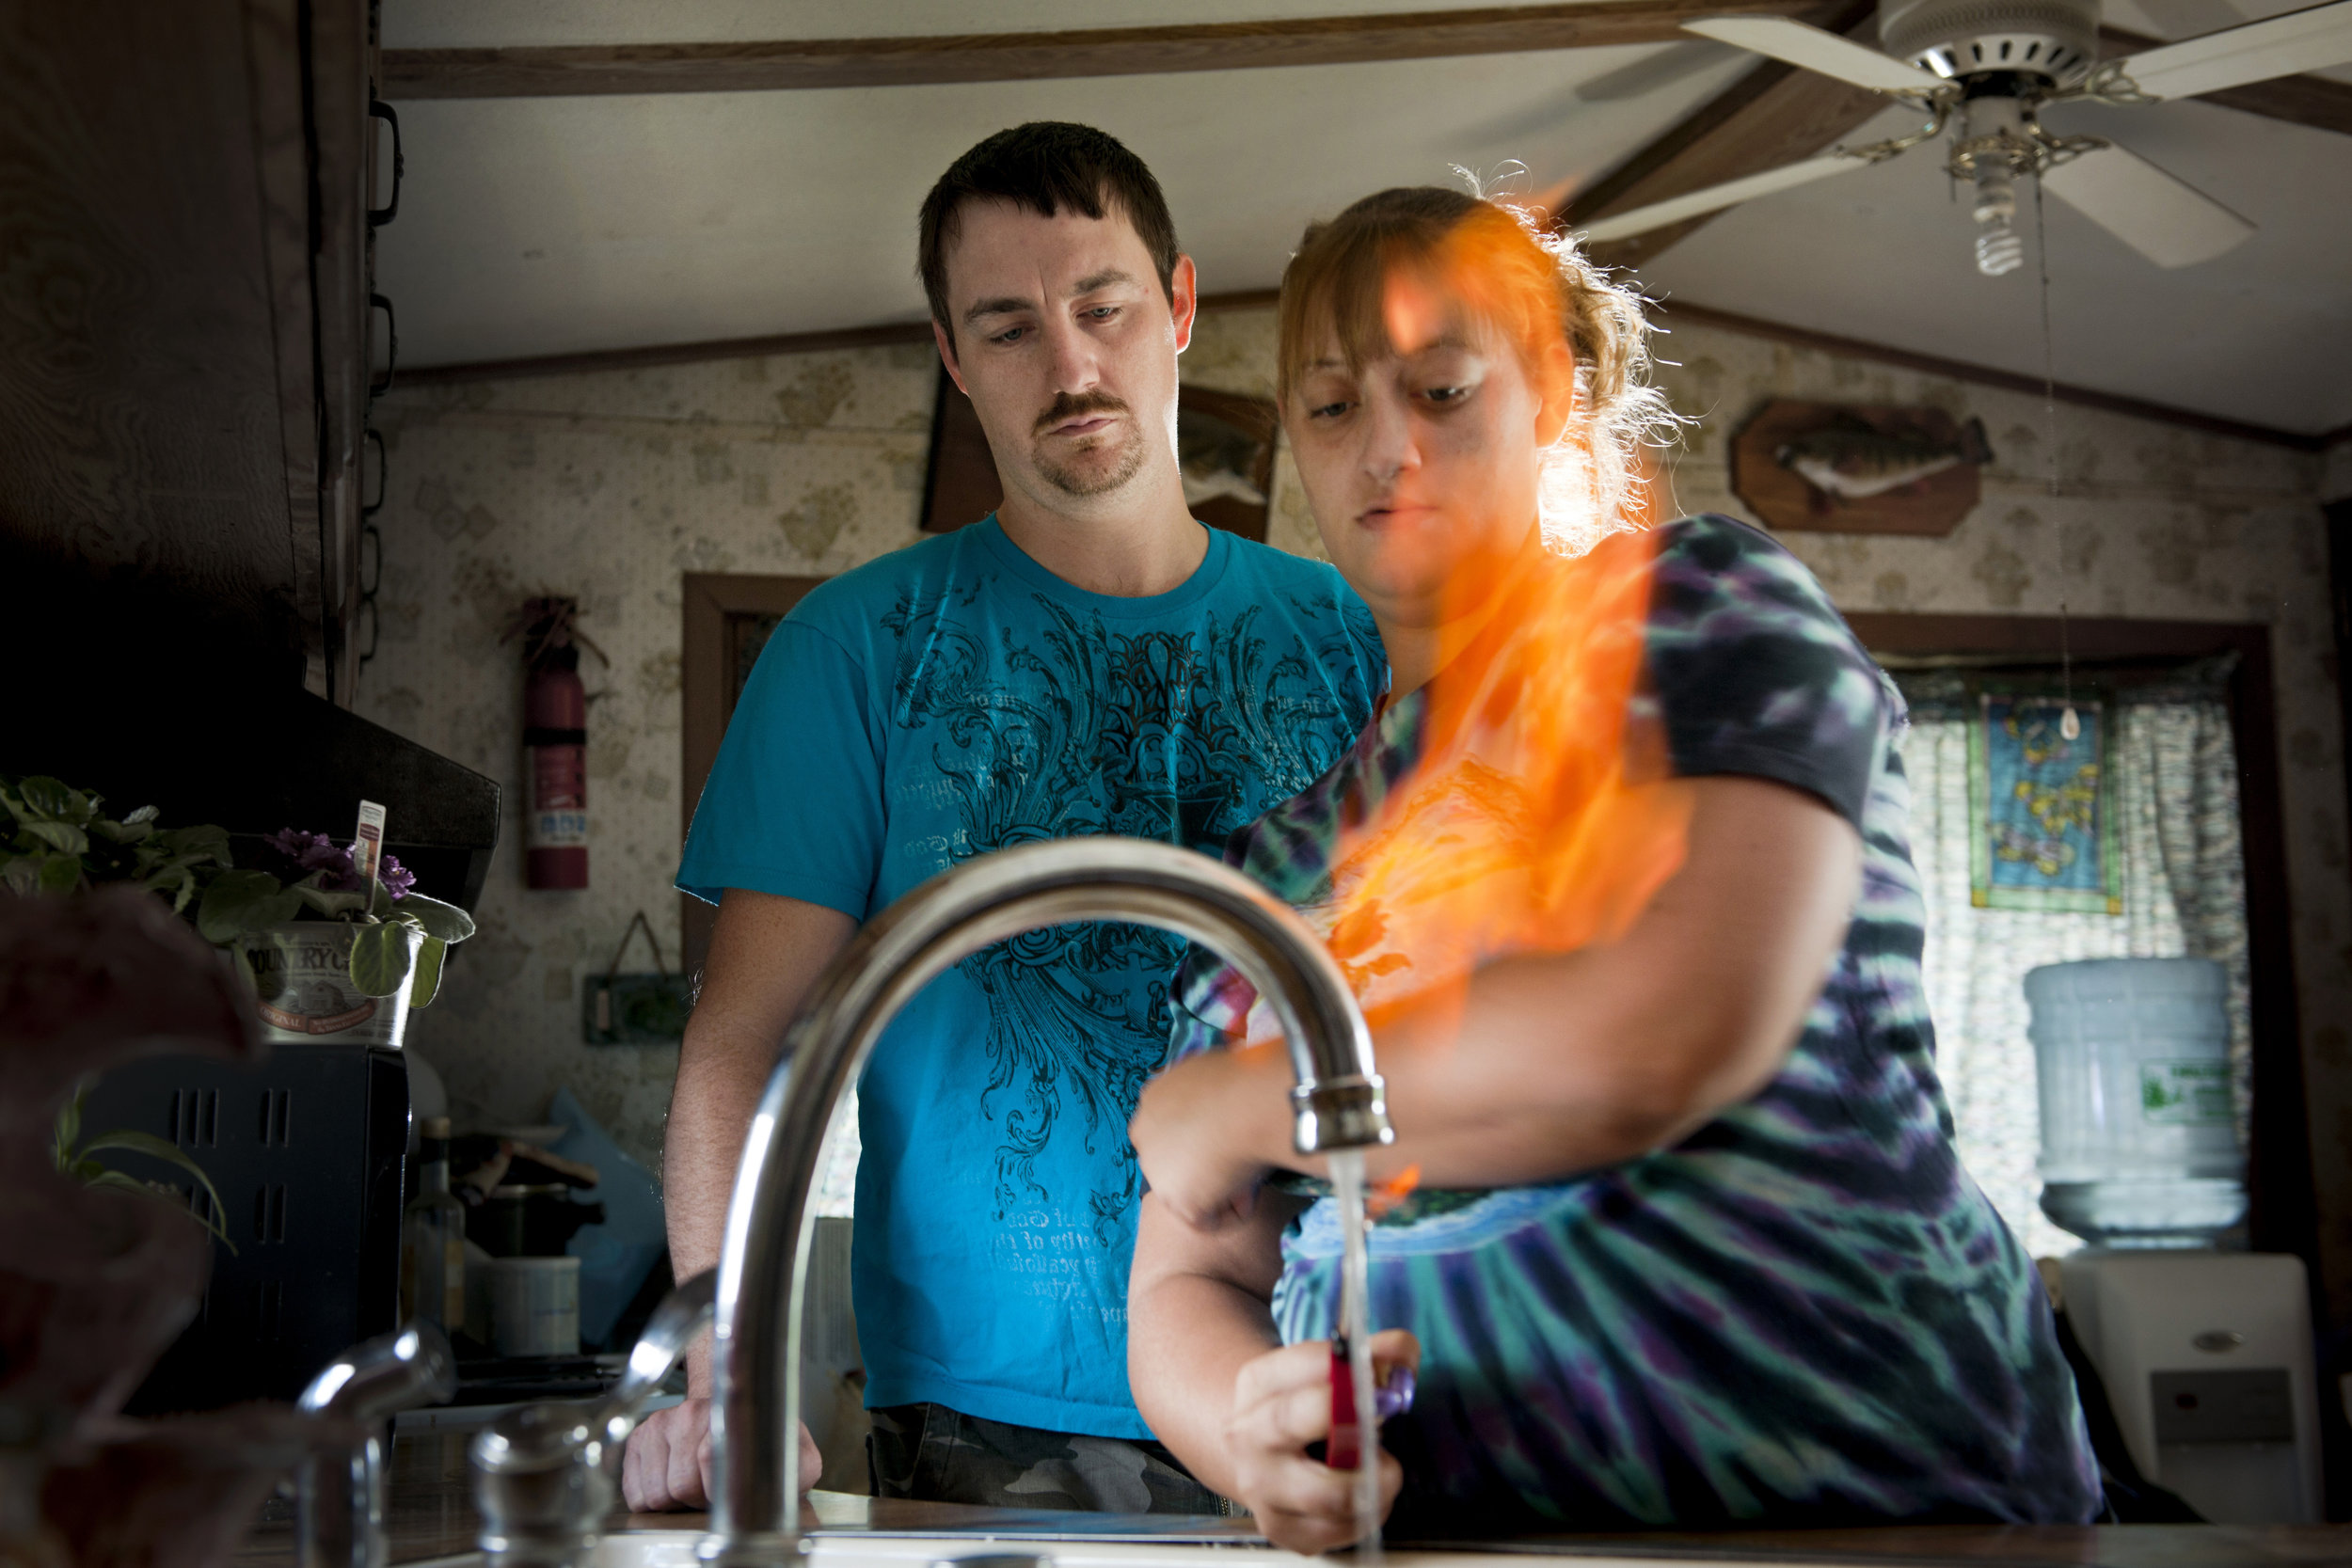 Earth Air Fire Water - Gas Shale Exploration  Jodie Simons and Jason Lamphere demonstrate how their sink water lights on fire. It is full of methane. Their water was pristine before gas drilling started. Their neighbors water is also contaminated by the state Department of Environmental protection has not determined the source of the problem. They have been without clean drinking or bathing water for months. Their animals also became sick and they now give bottled water to their horses. A methane vent rises from their property.